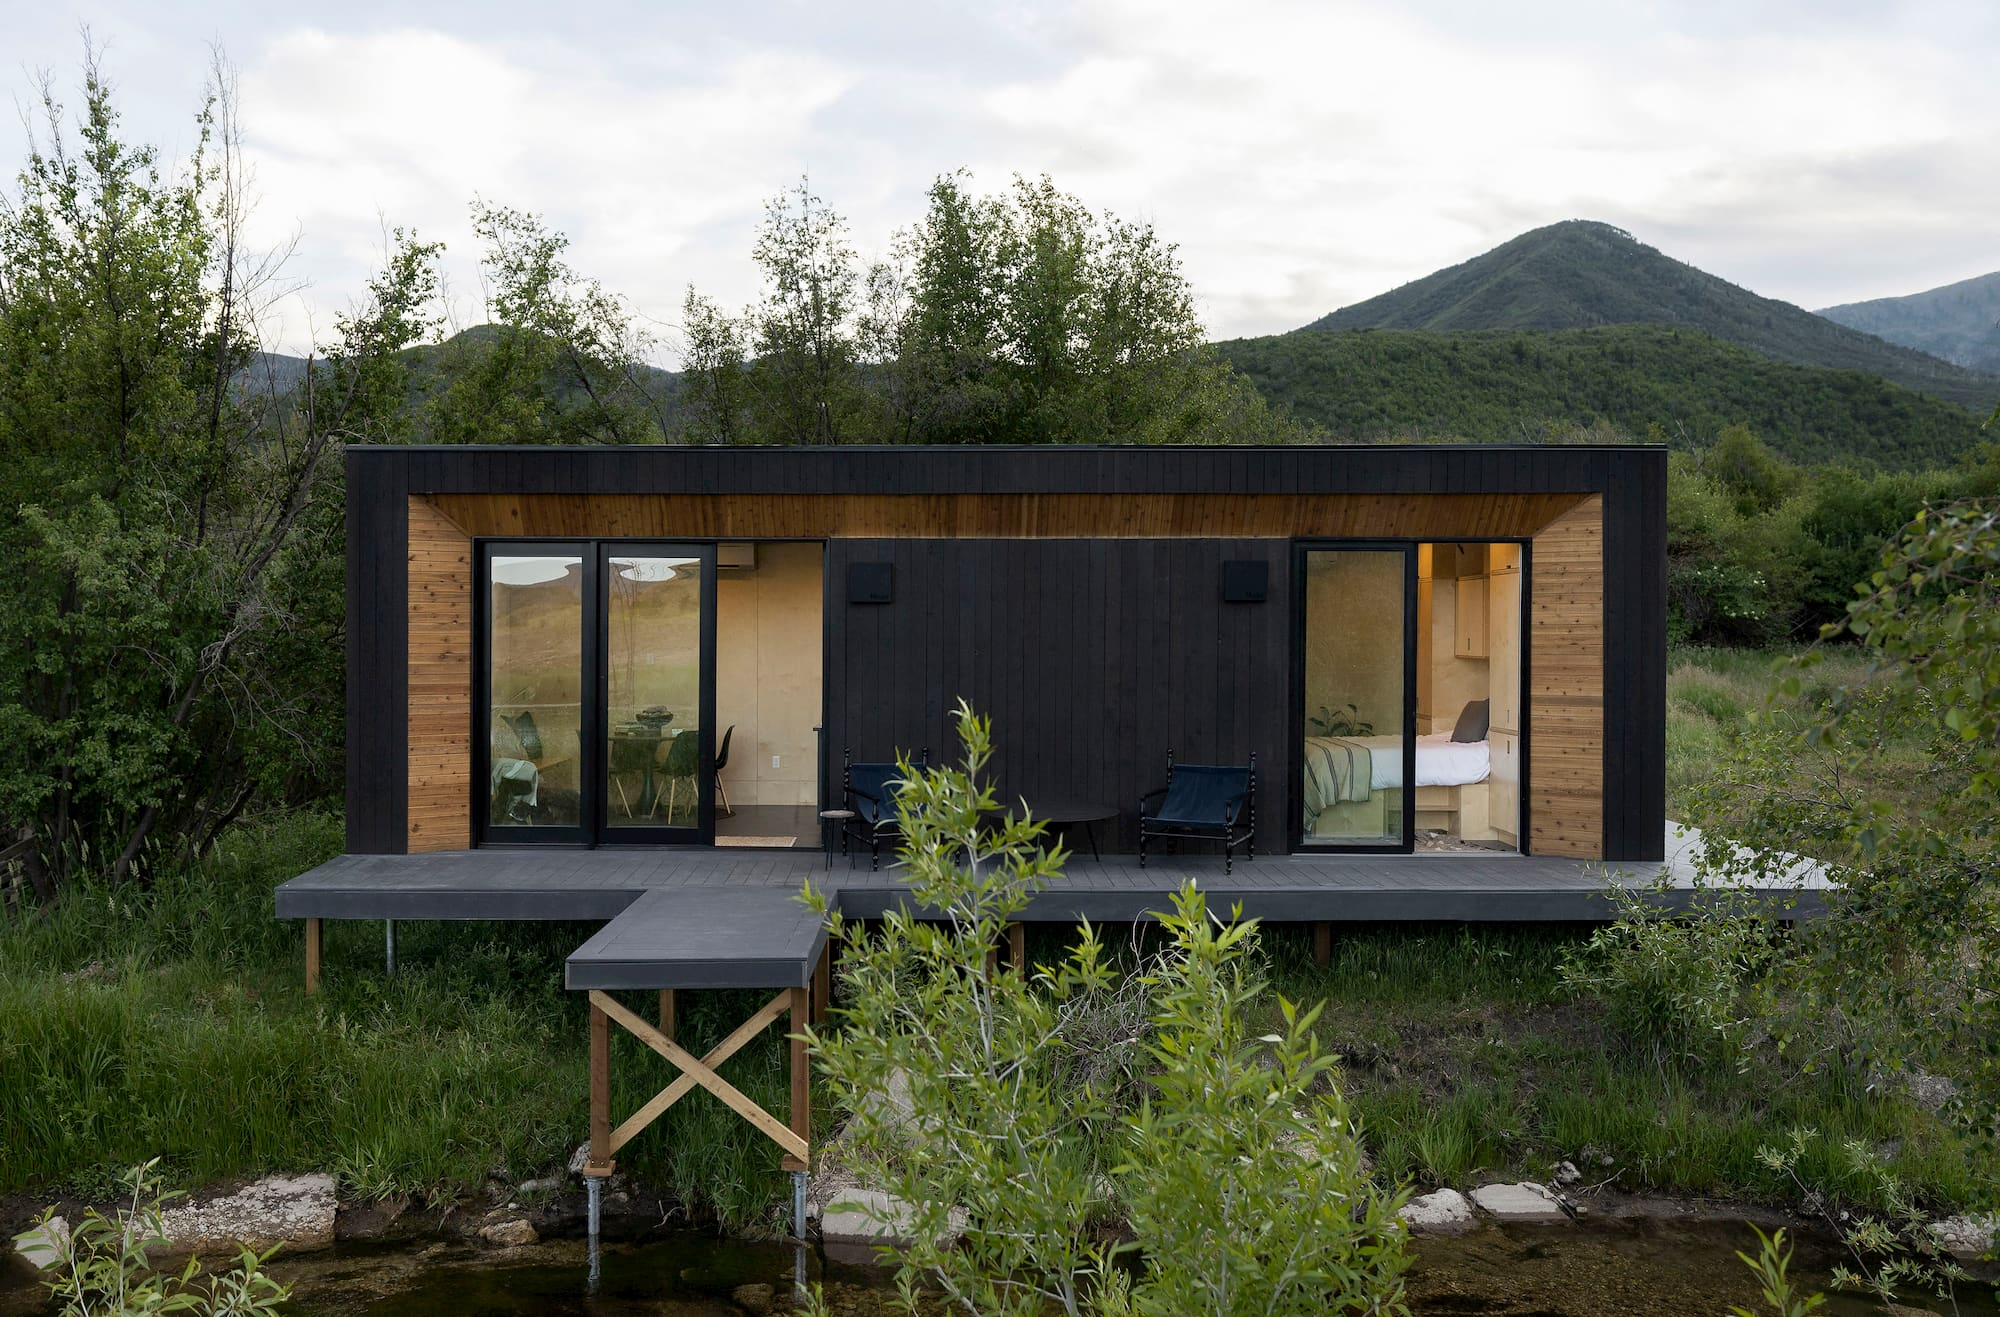 An aerial shot of a modular home set up in a backyard, with an integrated porch, large windows, and black wooden exterior visible as well as some grass.